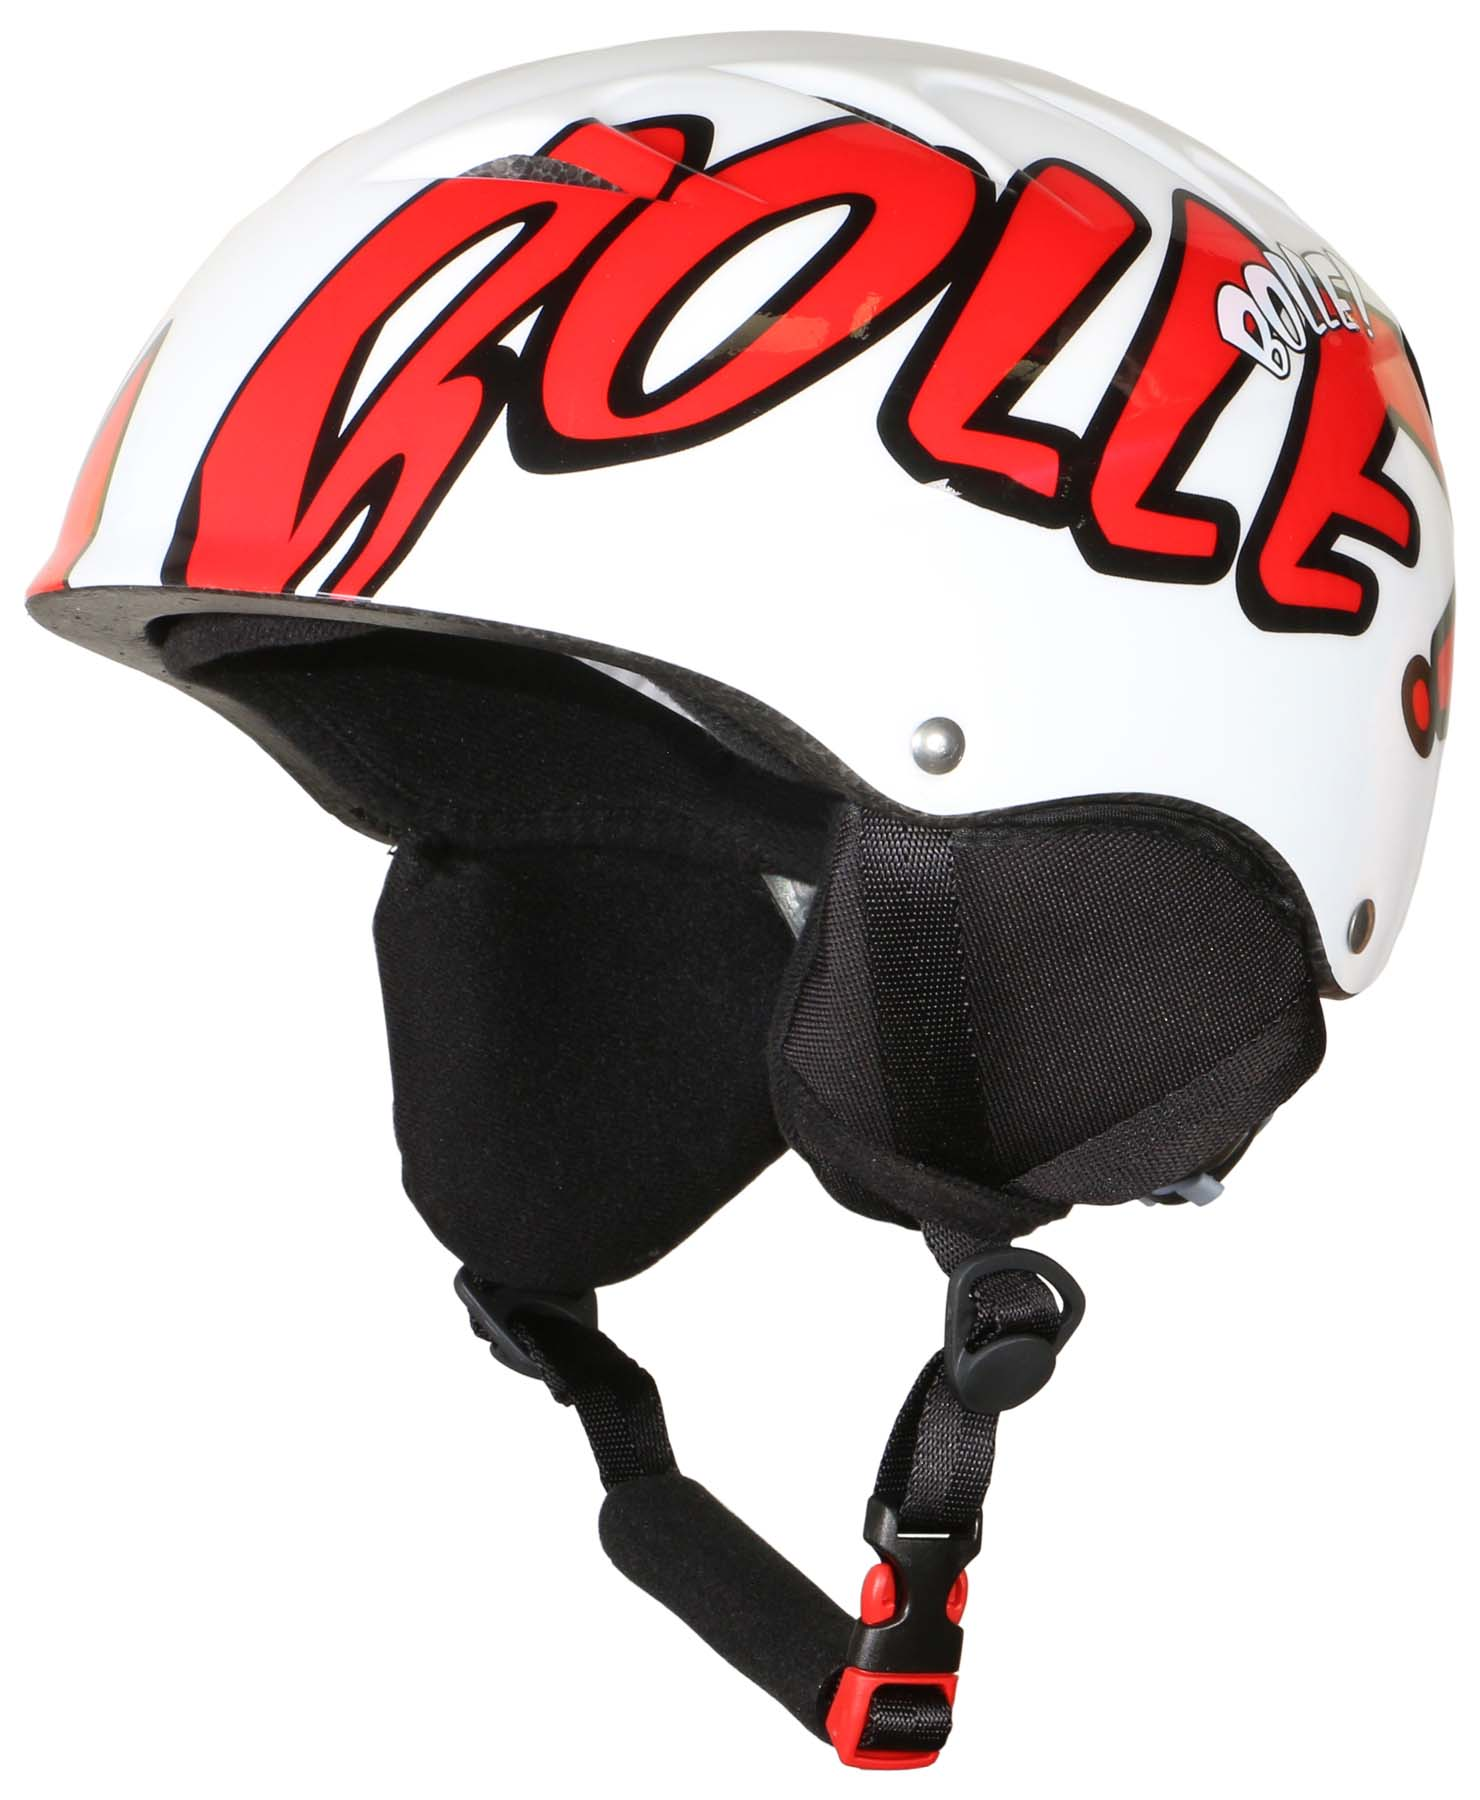 Bolle Kids Snow Ski Snowboard Helmet Goggle Combo Pack Adjustable Size by Bolle